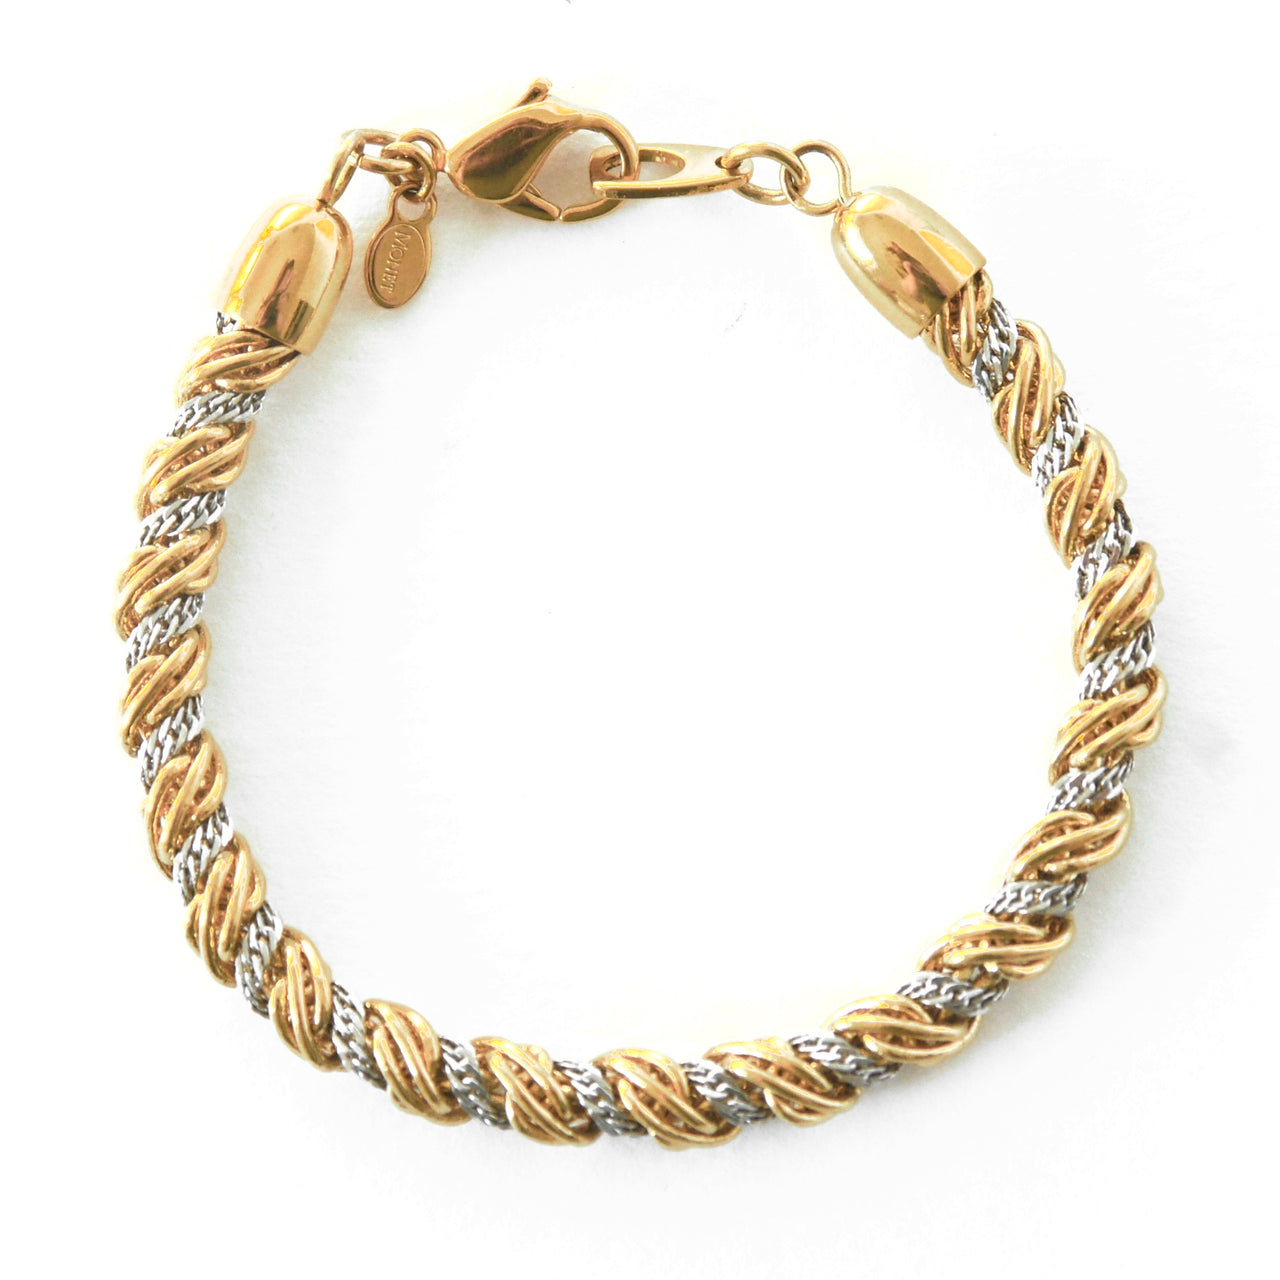 1980s Vintage Monet Twisted Rope Chain Bracelet